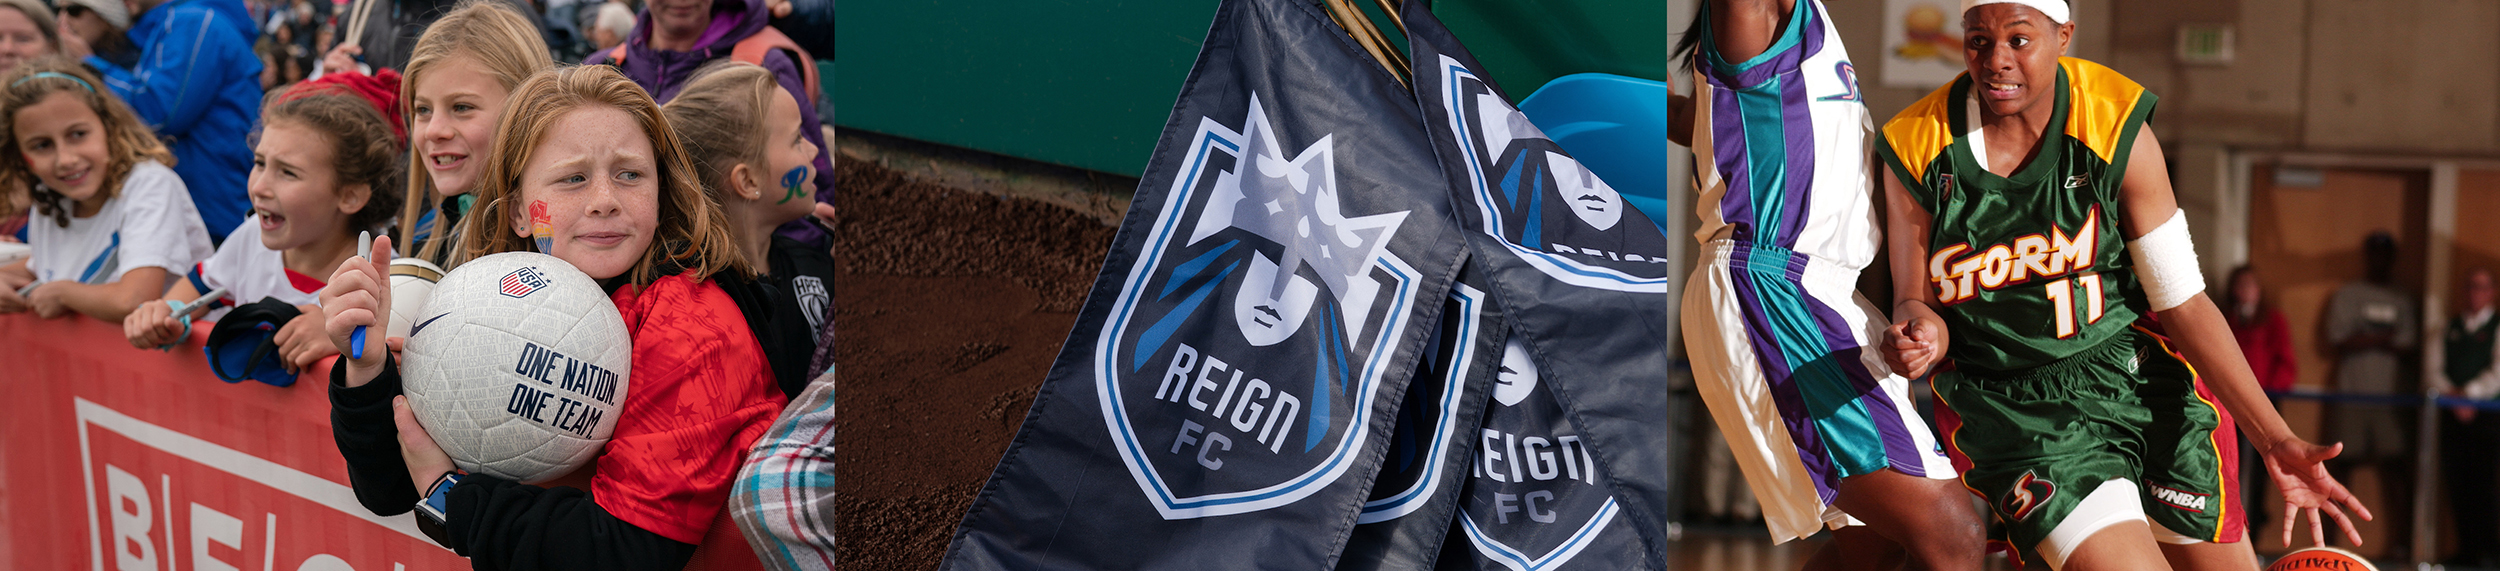 Triptych featuring soccer fans, a Reign banner and a Storm player